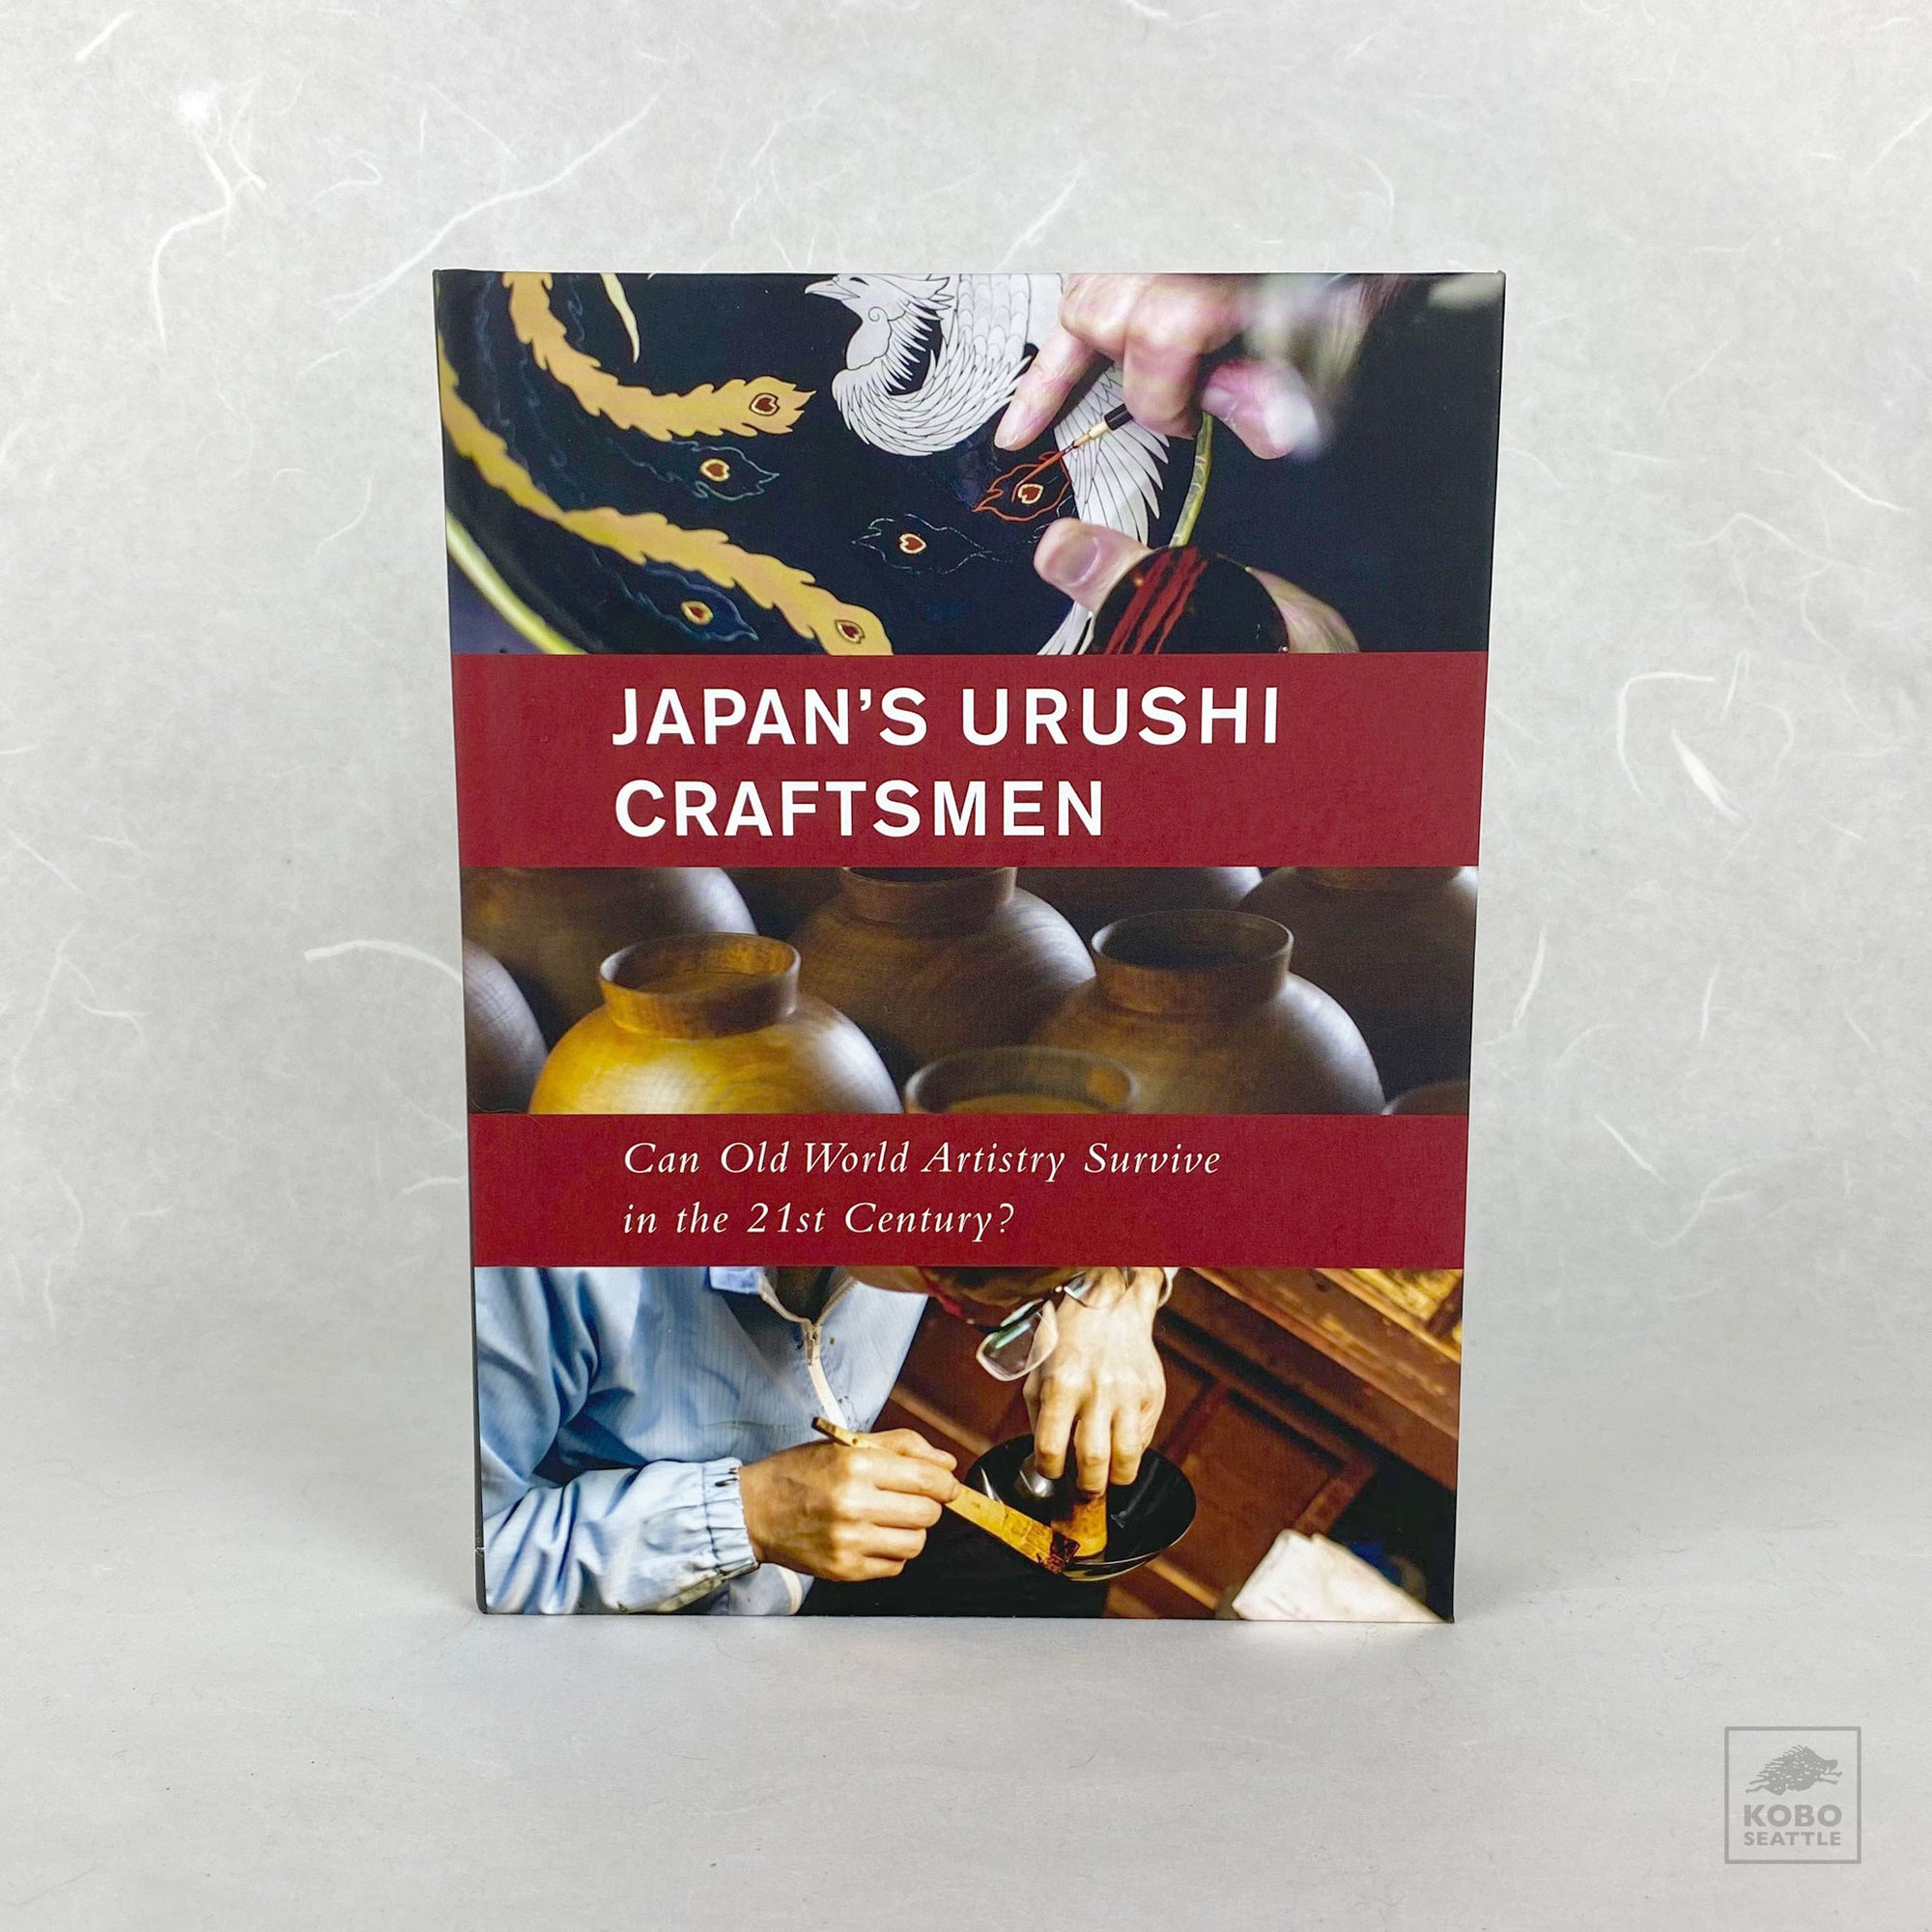 Book of Japan's Urushi Craftsmen